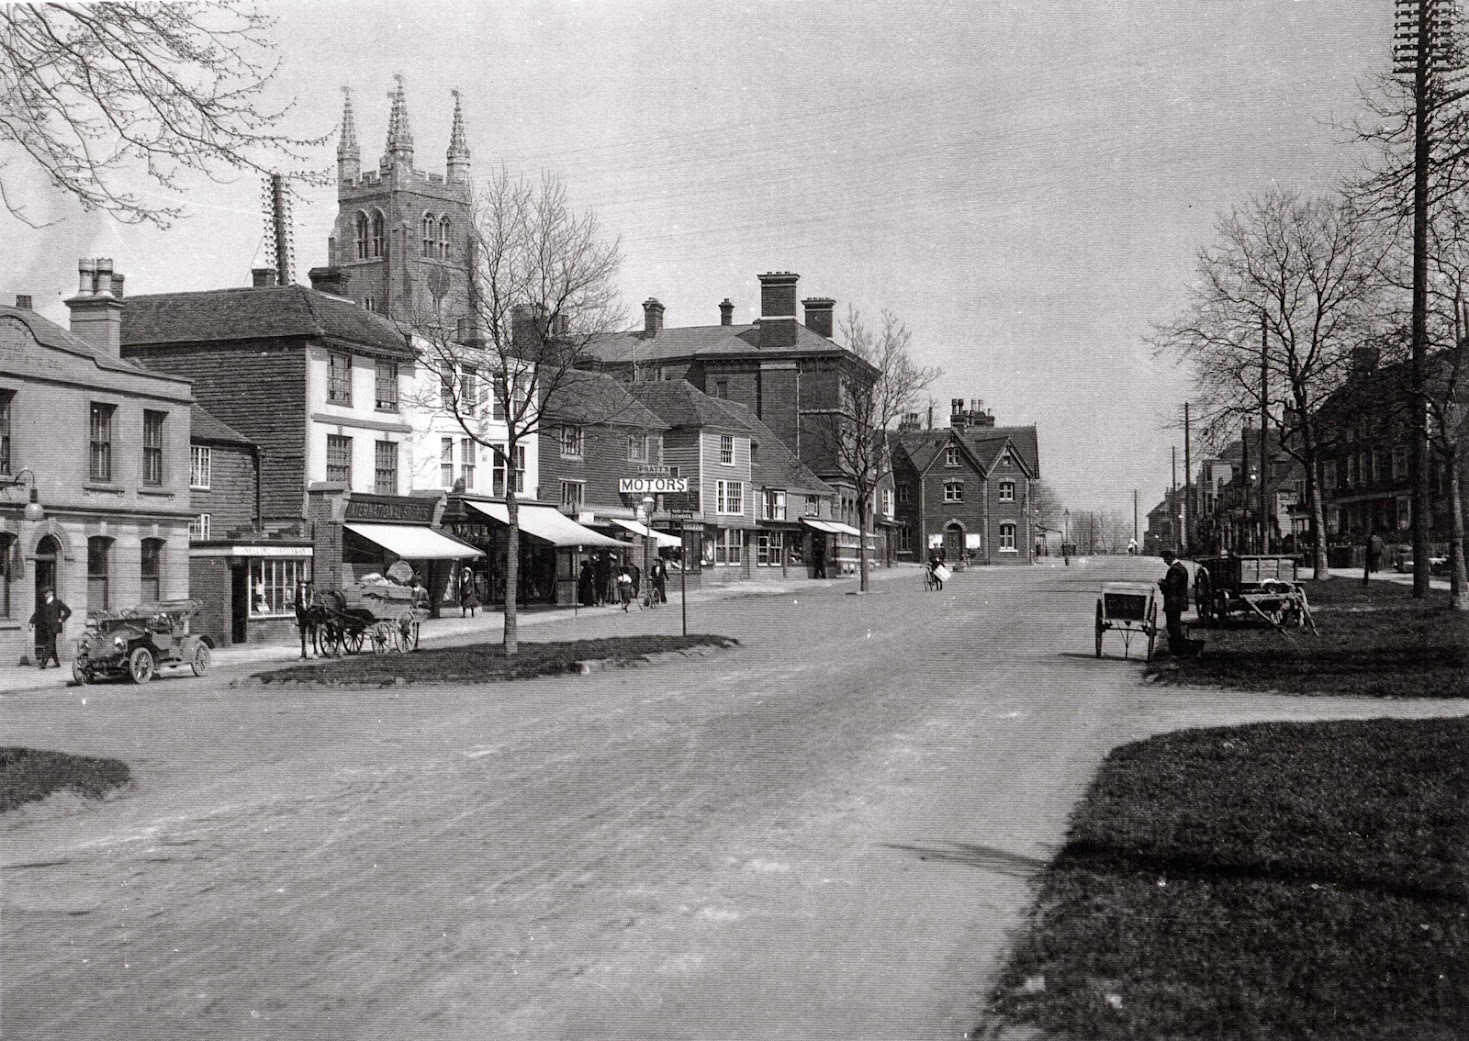 Tenterden High Street in 1912, photo taken during solar eclipse